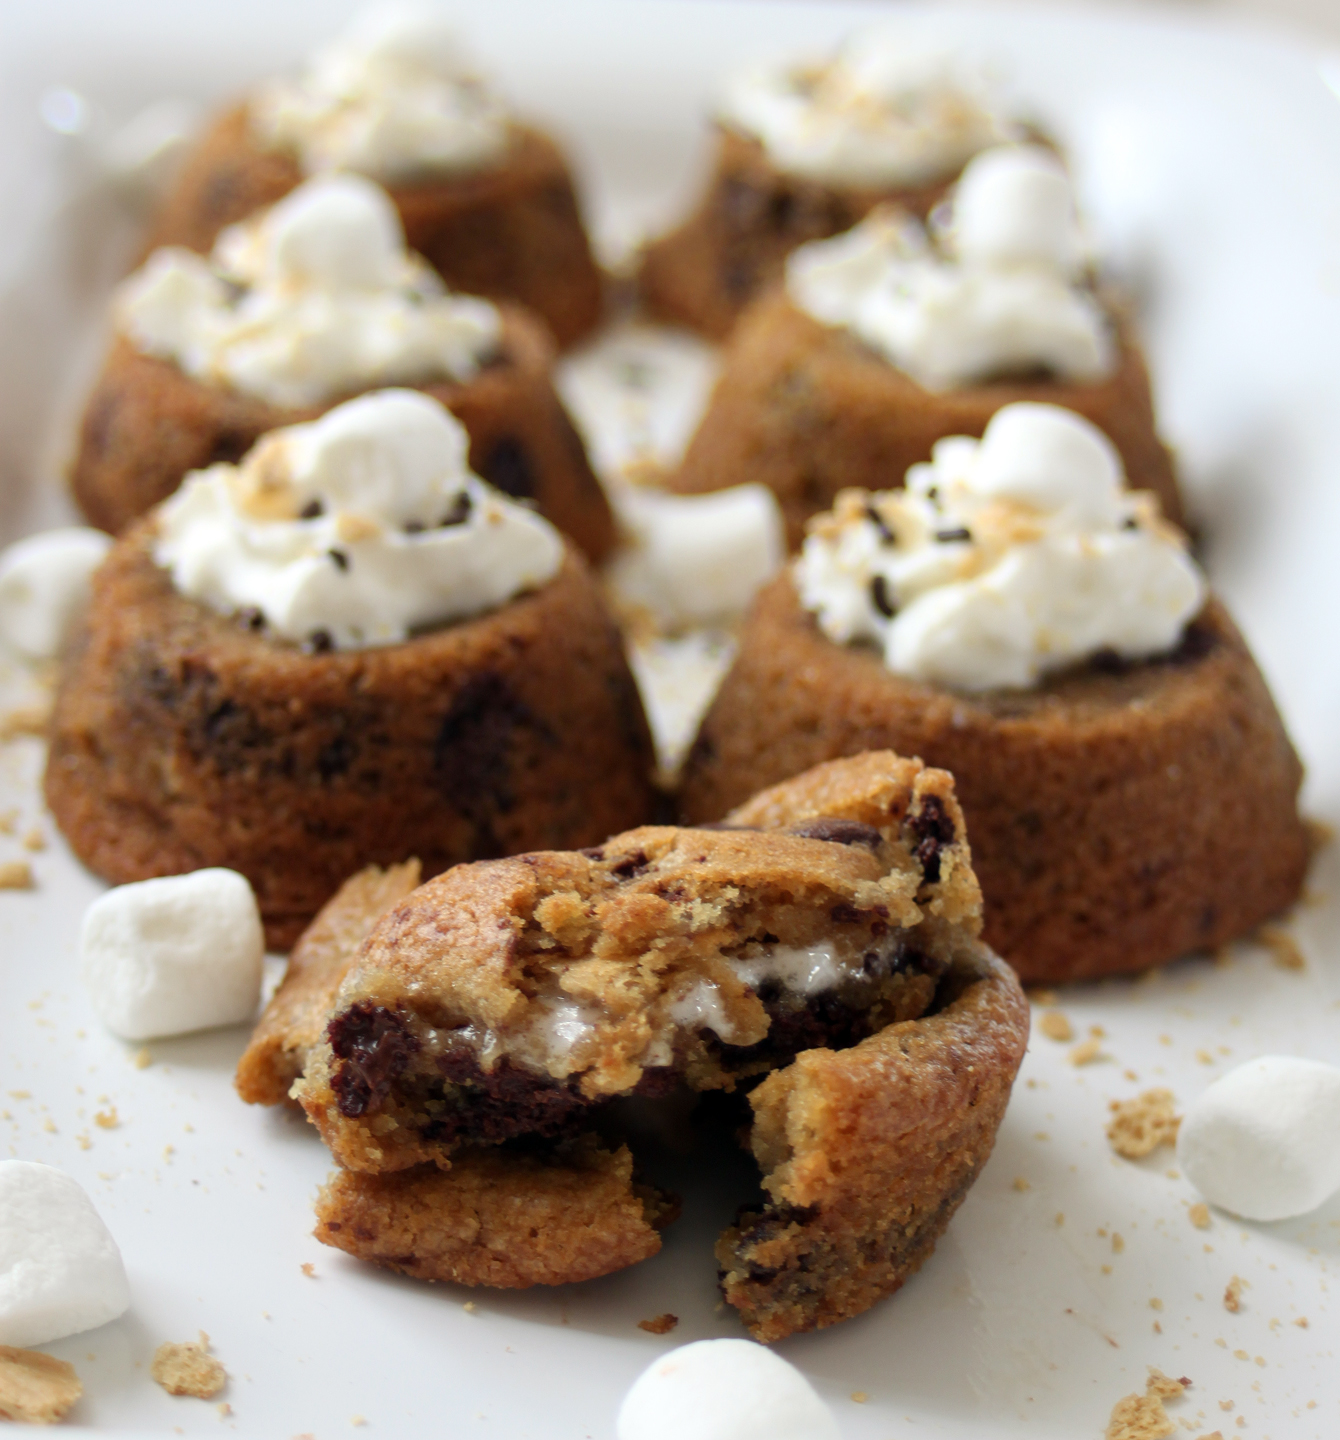 Phoenix Family Foodie Blog: S'mores Stuffed Chocolate Chip Cookies